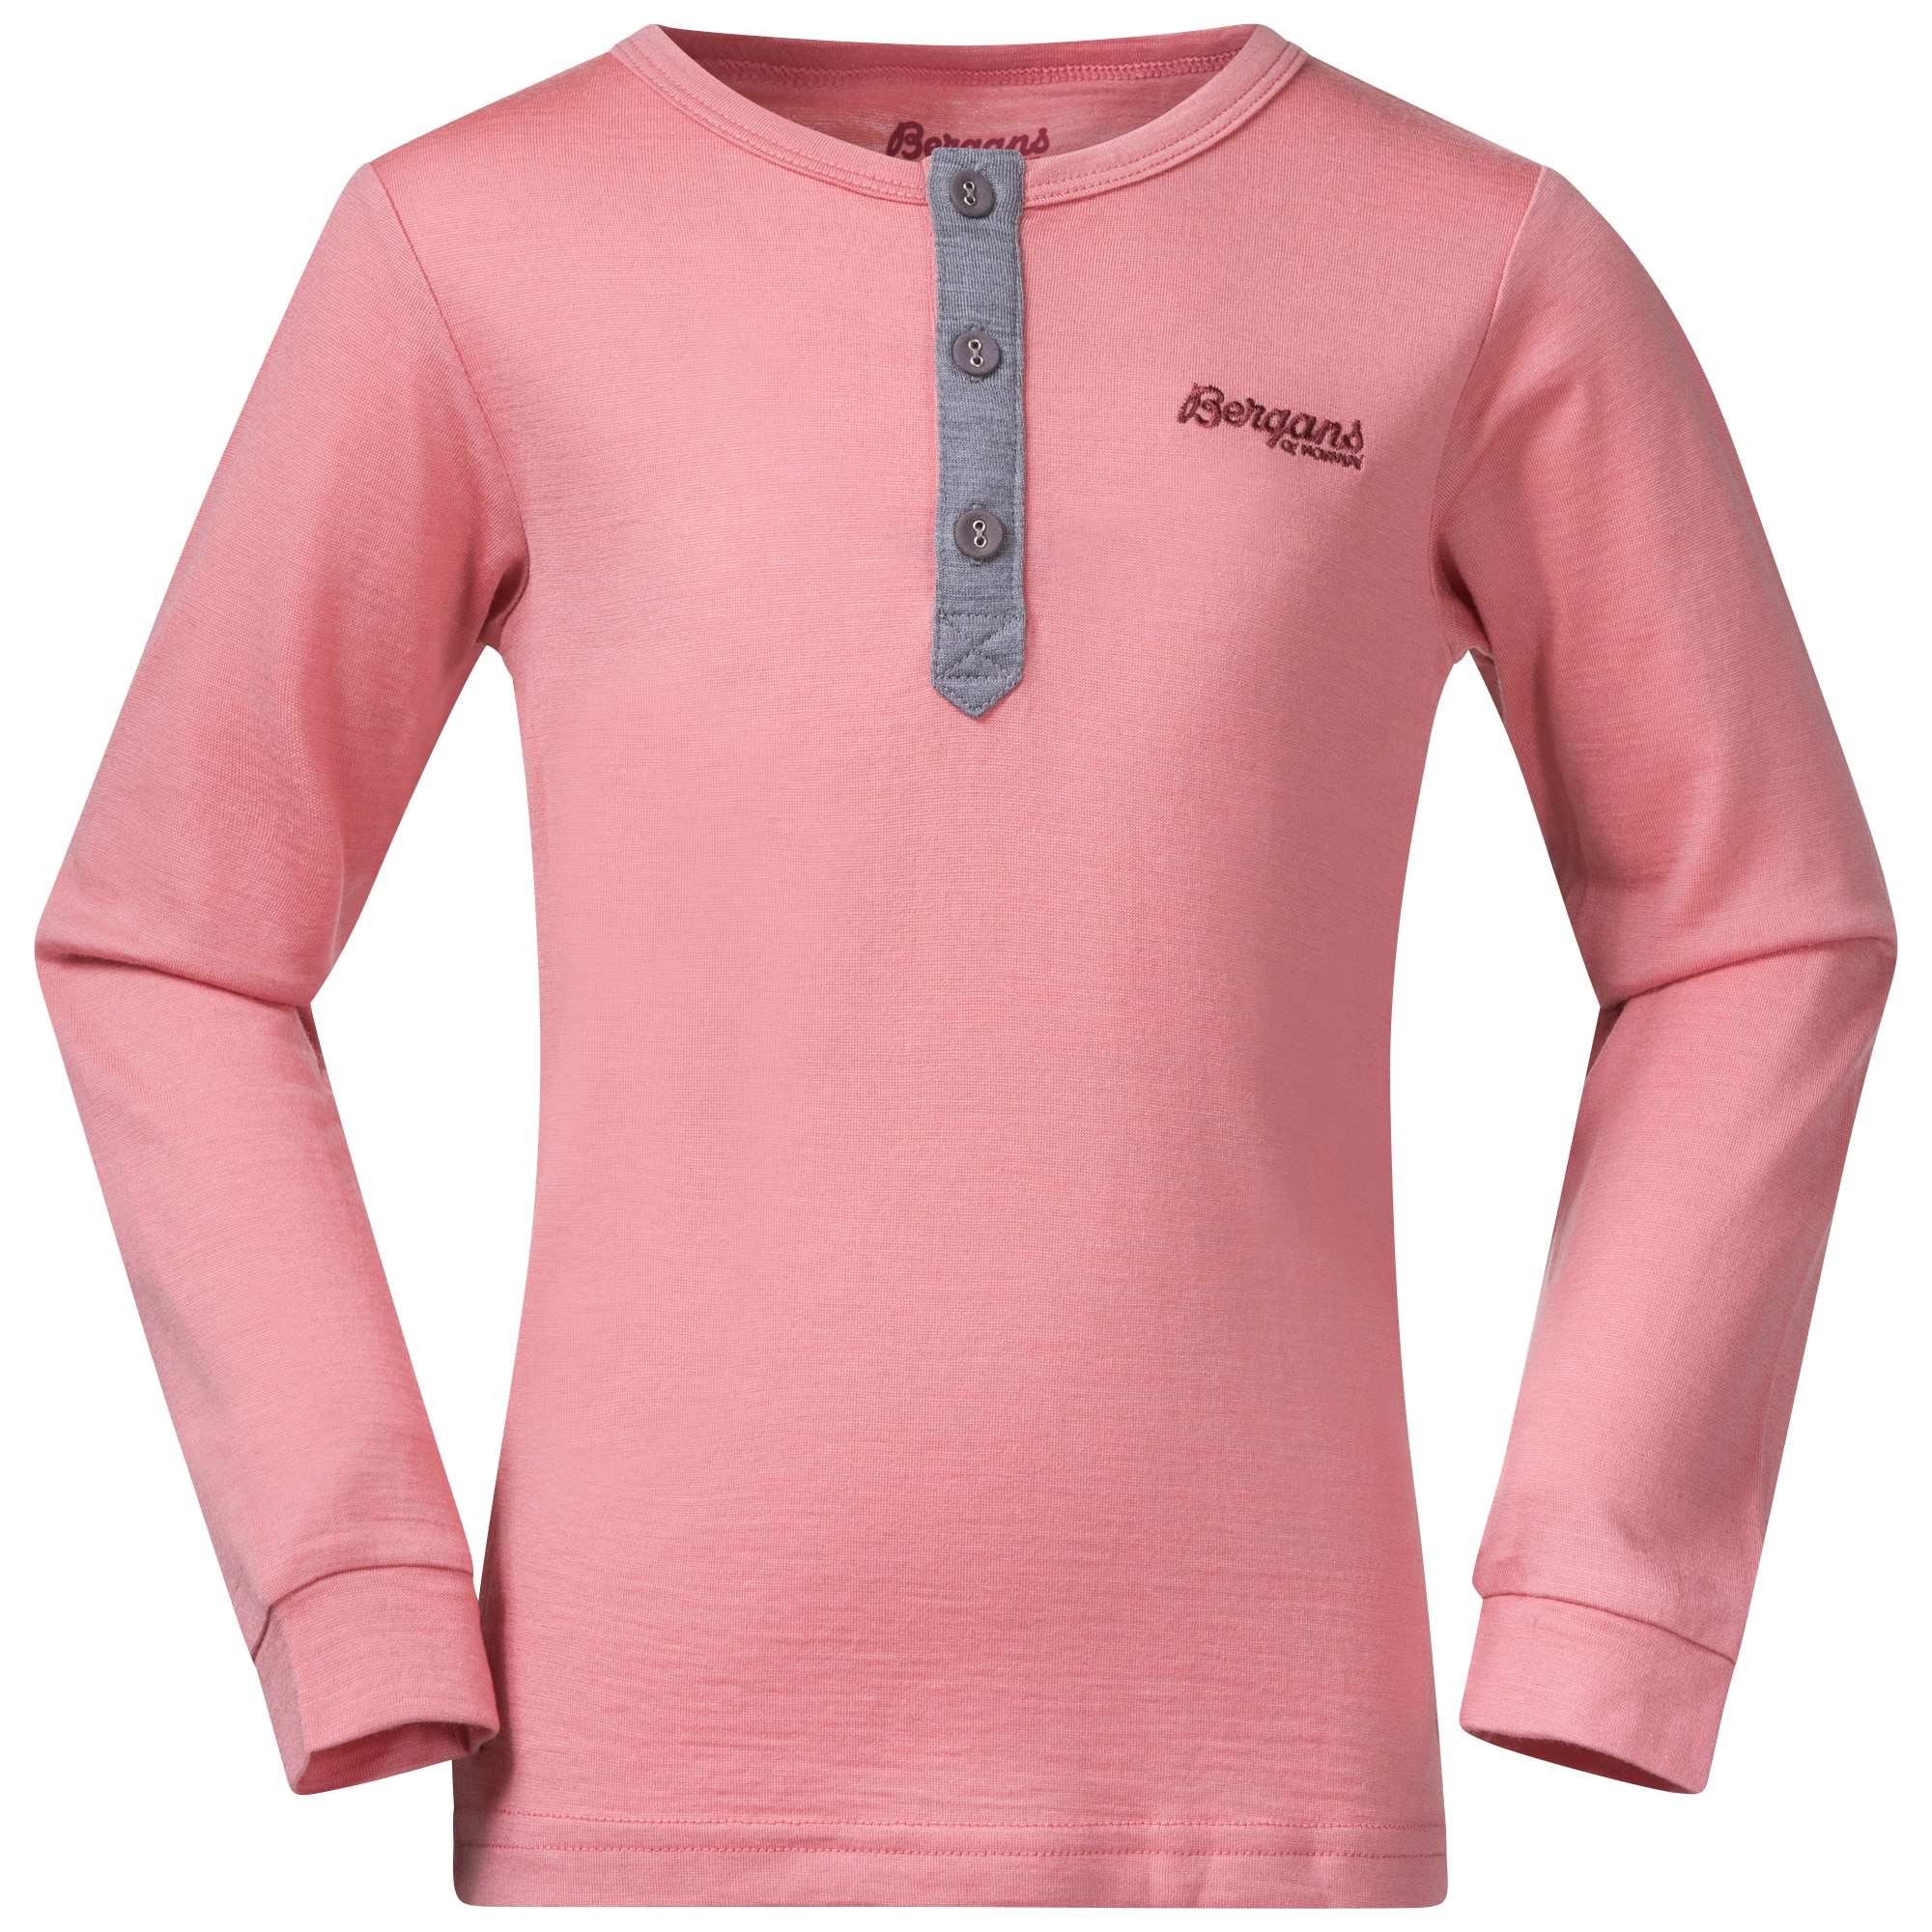 Myske Wool Kids Shirt